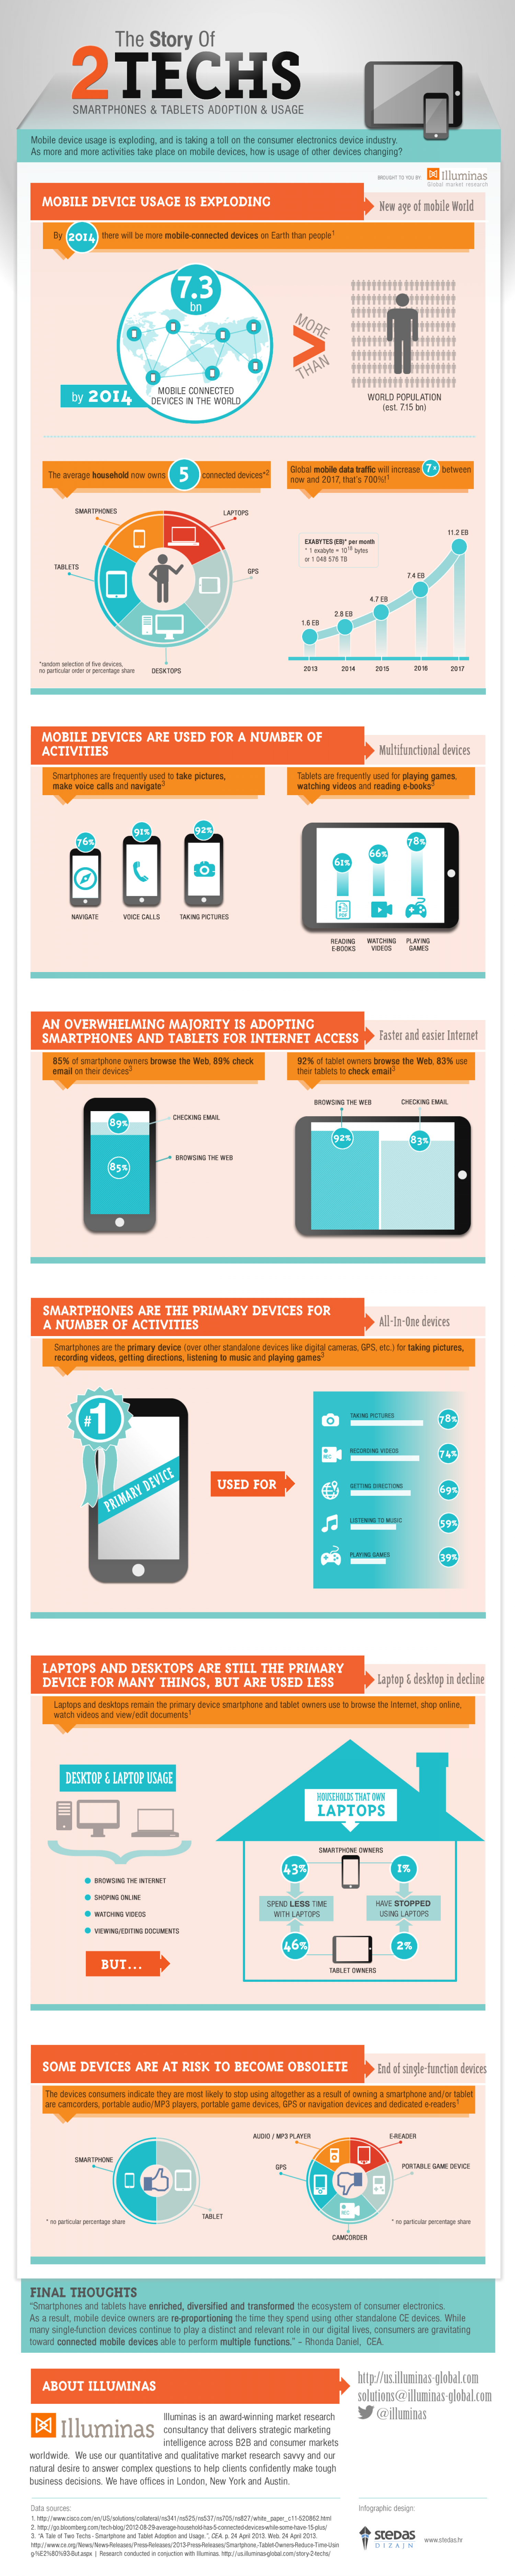 The Story of Two Techs: Smartphone & Tablet Adoption & Usage Infographic